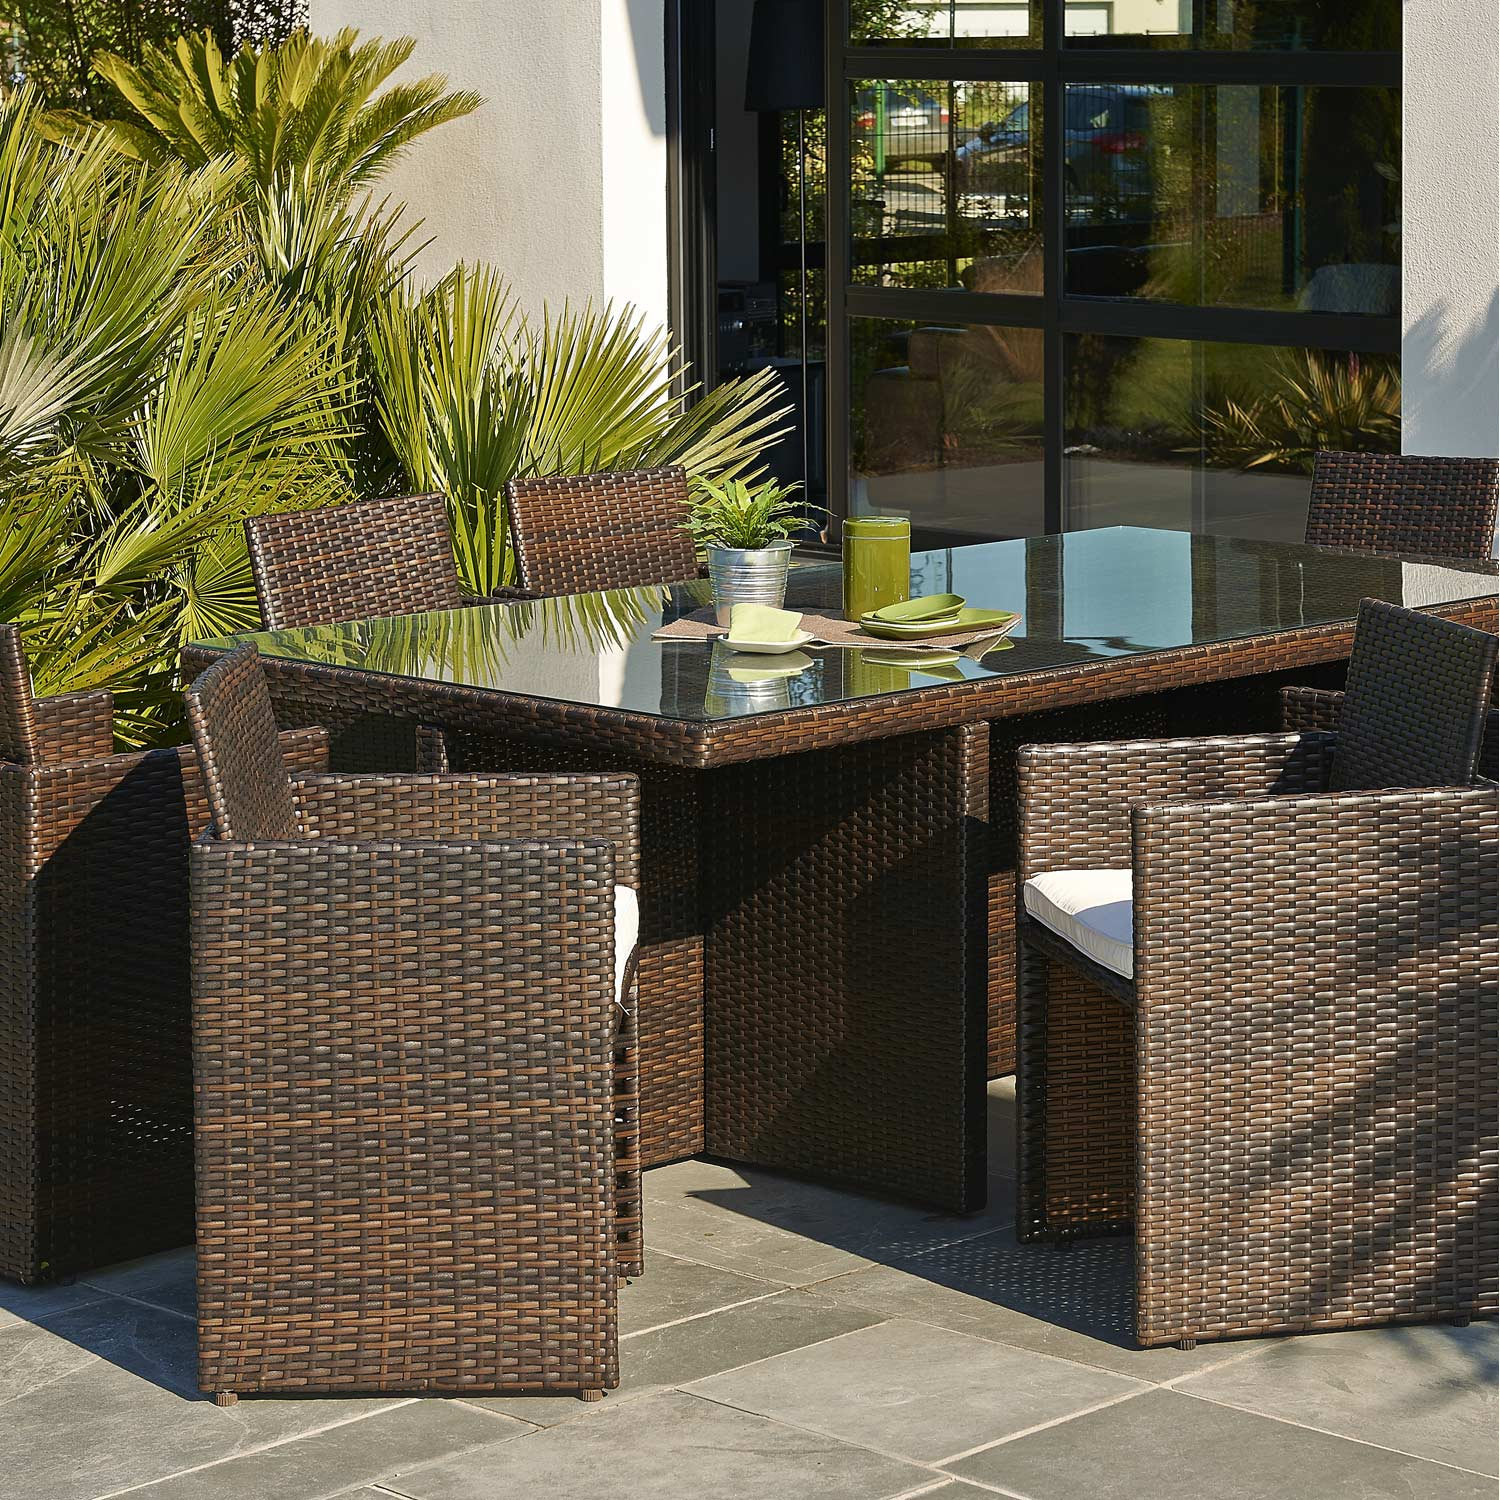 Salon de jardin encastrable r sine tress e marron 1 table - Salon de jardin en acacia ...